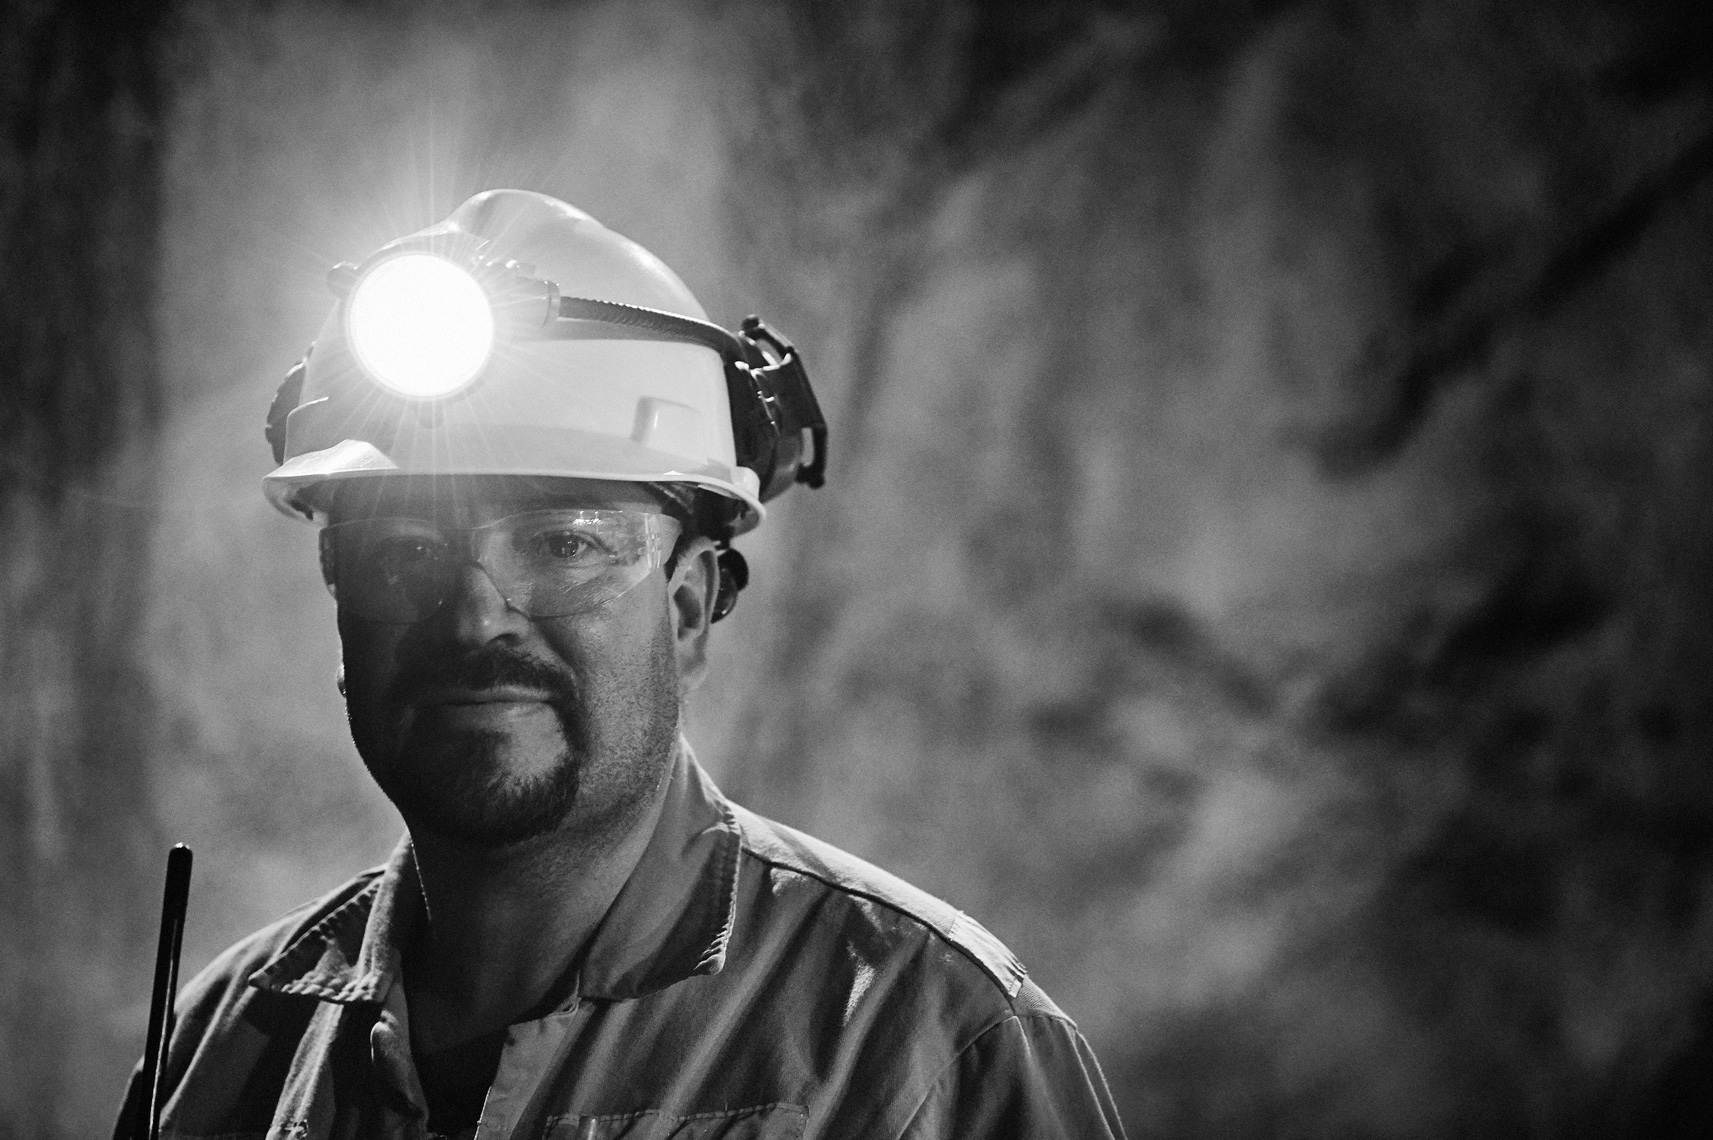 2017-Vancouver-Corporate-Photographer-ErichSaide-Mining-Leagold-BlackandWhite-Portrait